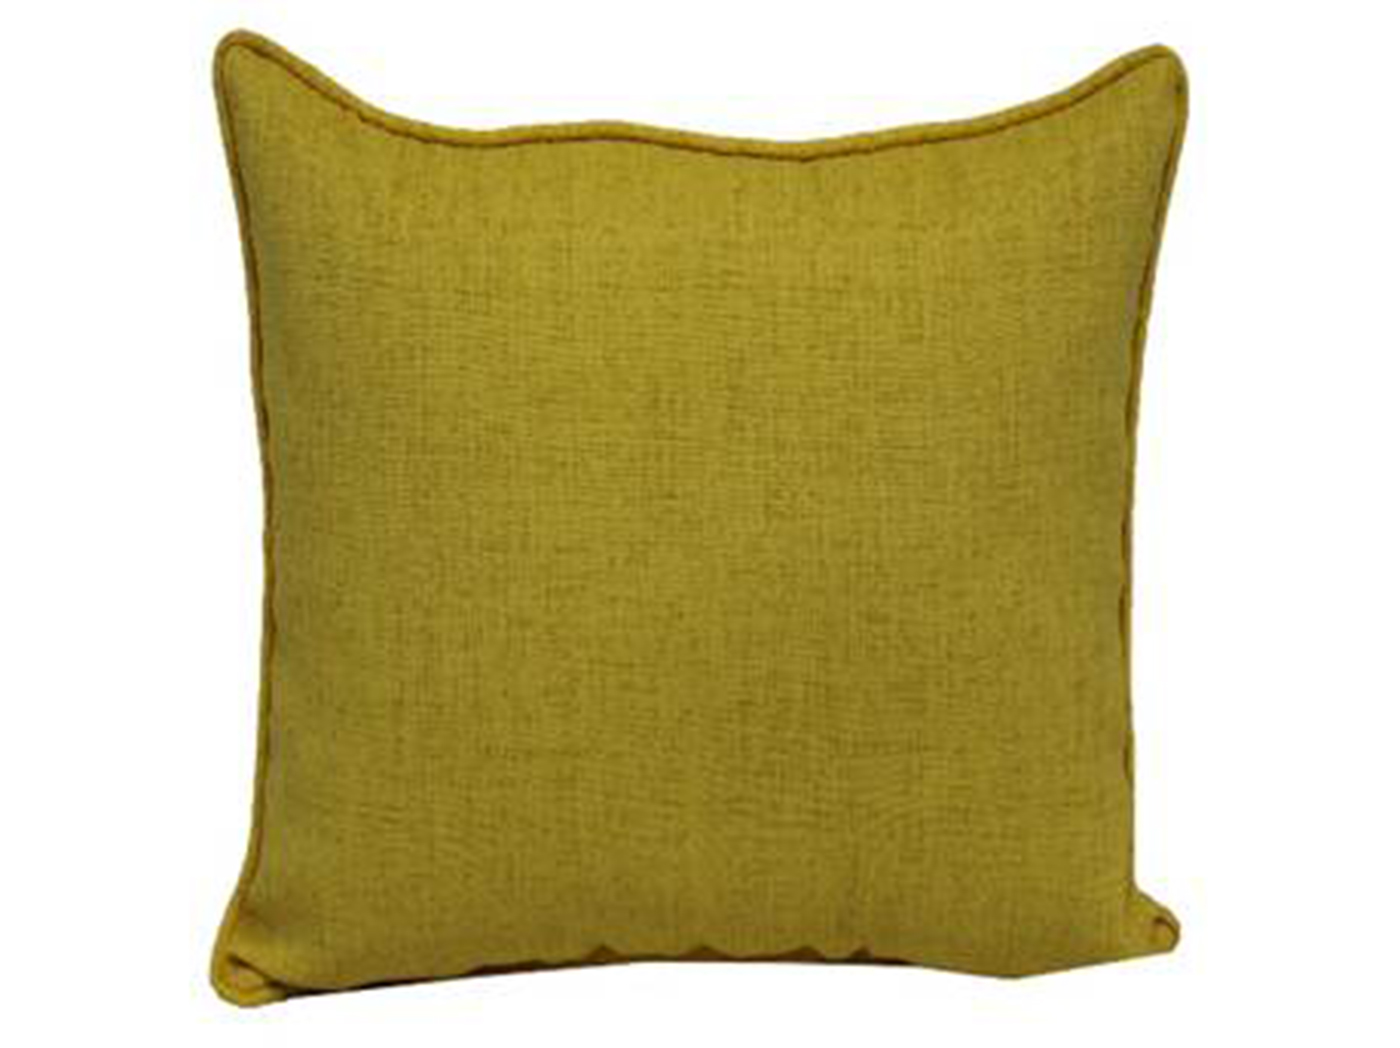 Pacific Linen Yellow Outdoor Pillow 17""